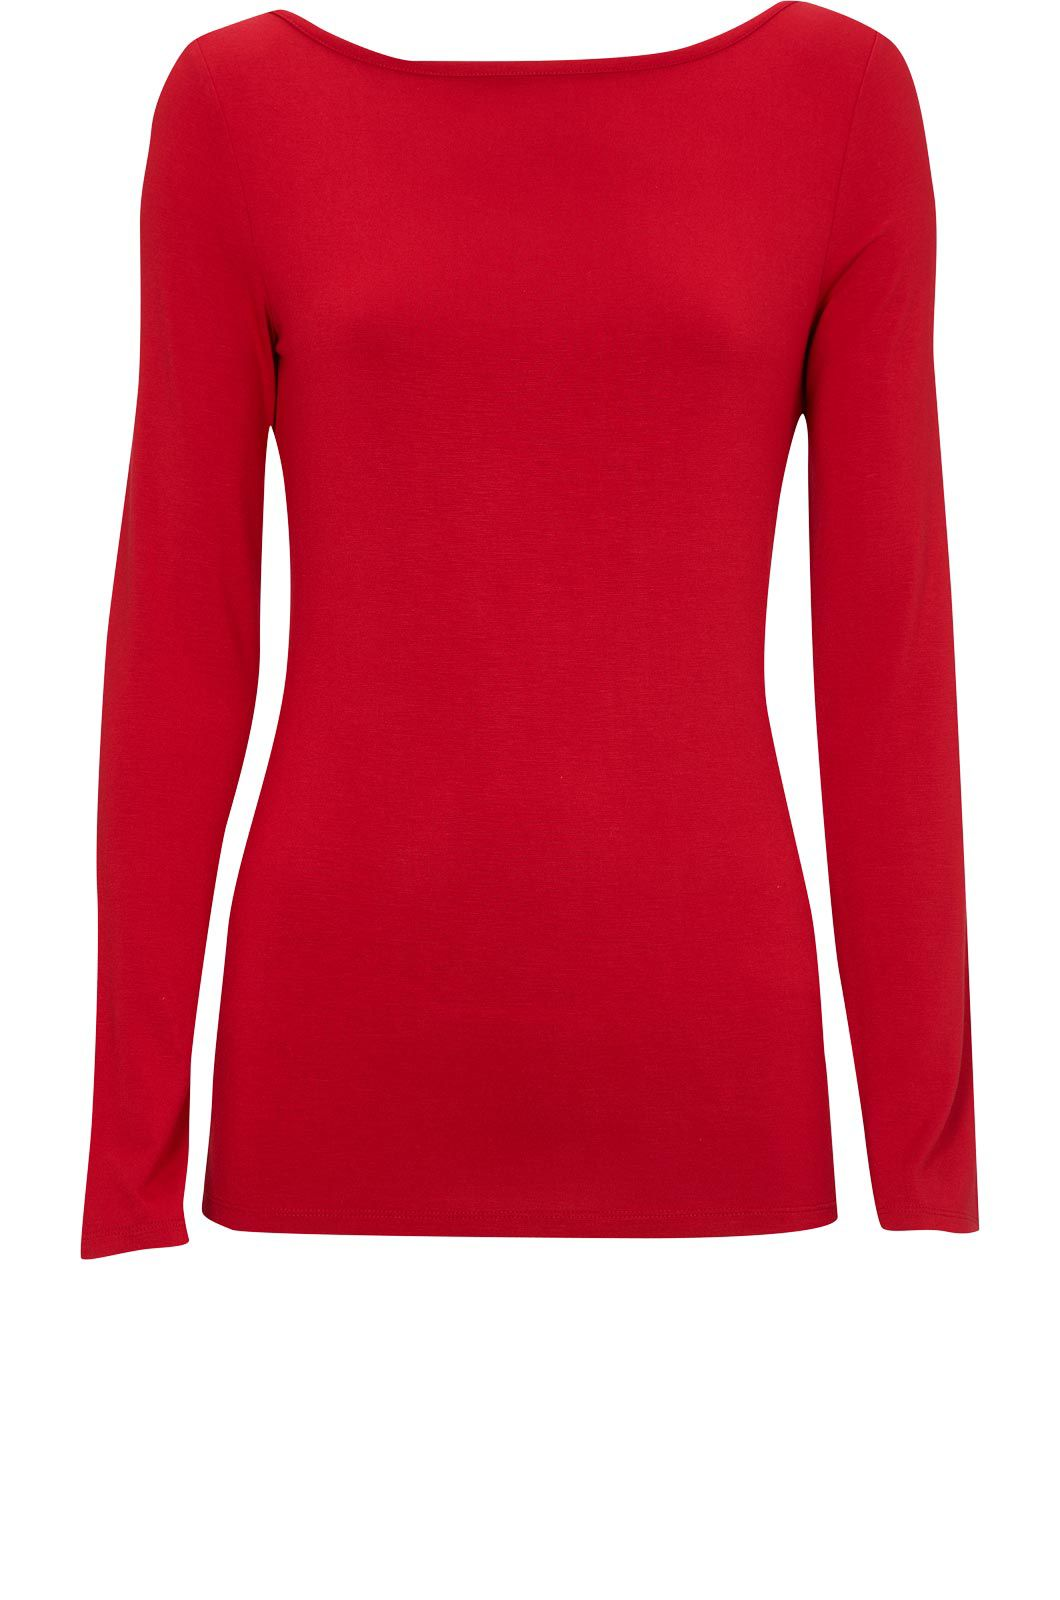 Oasis Boatenck long sleeve tee Red product image